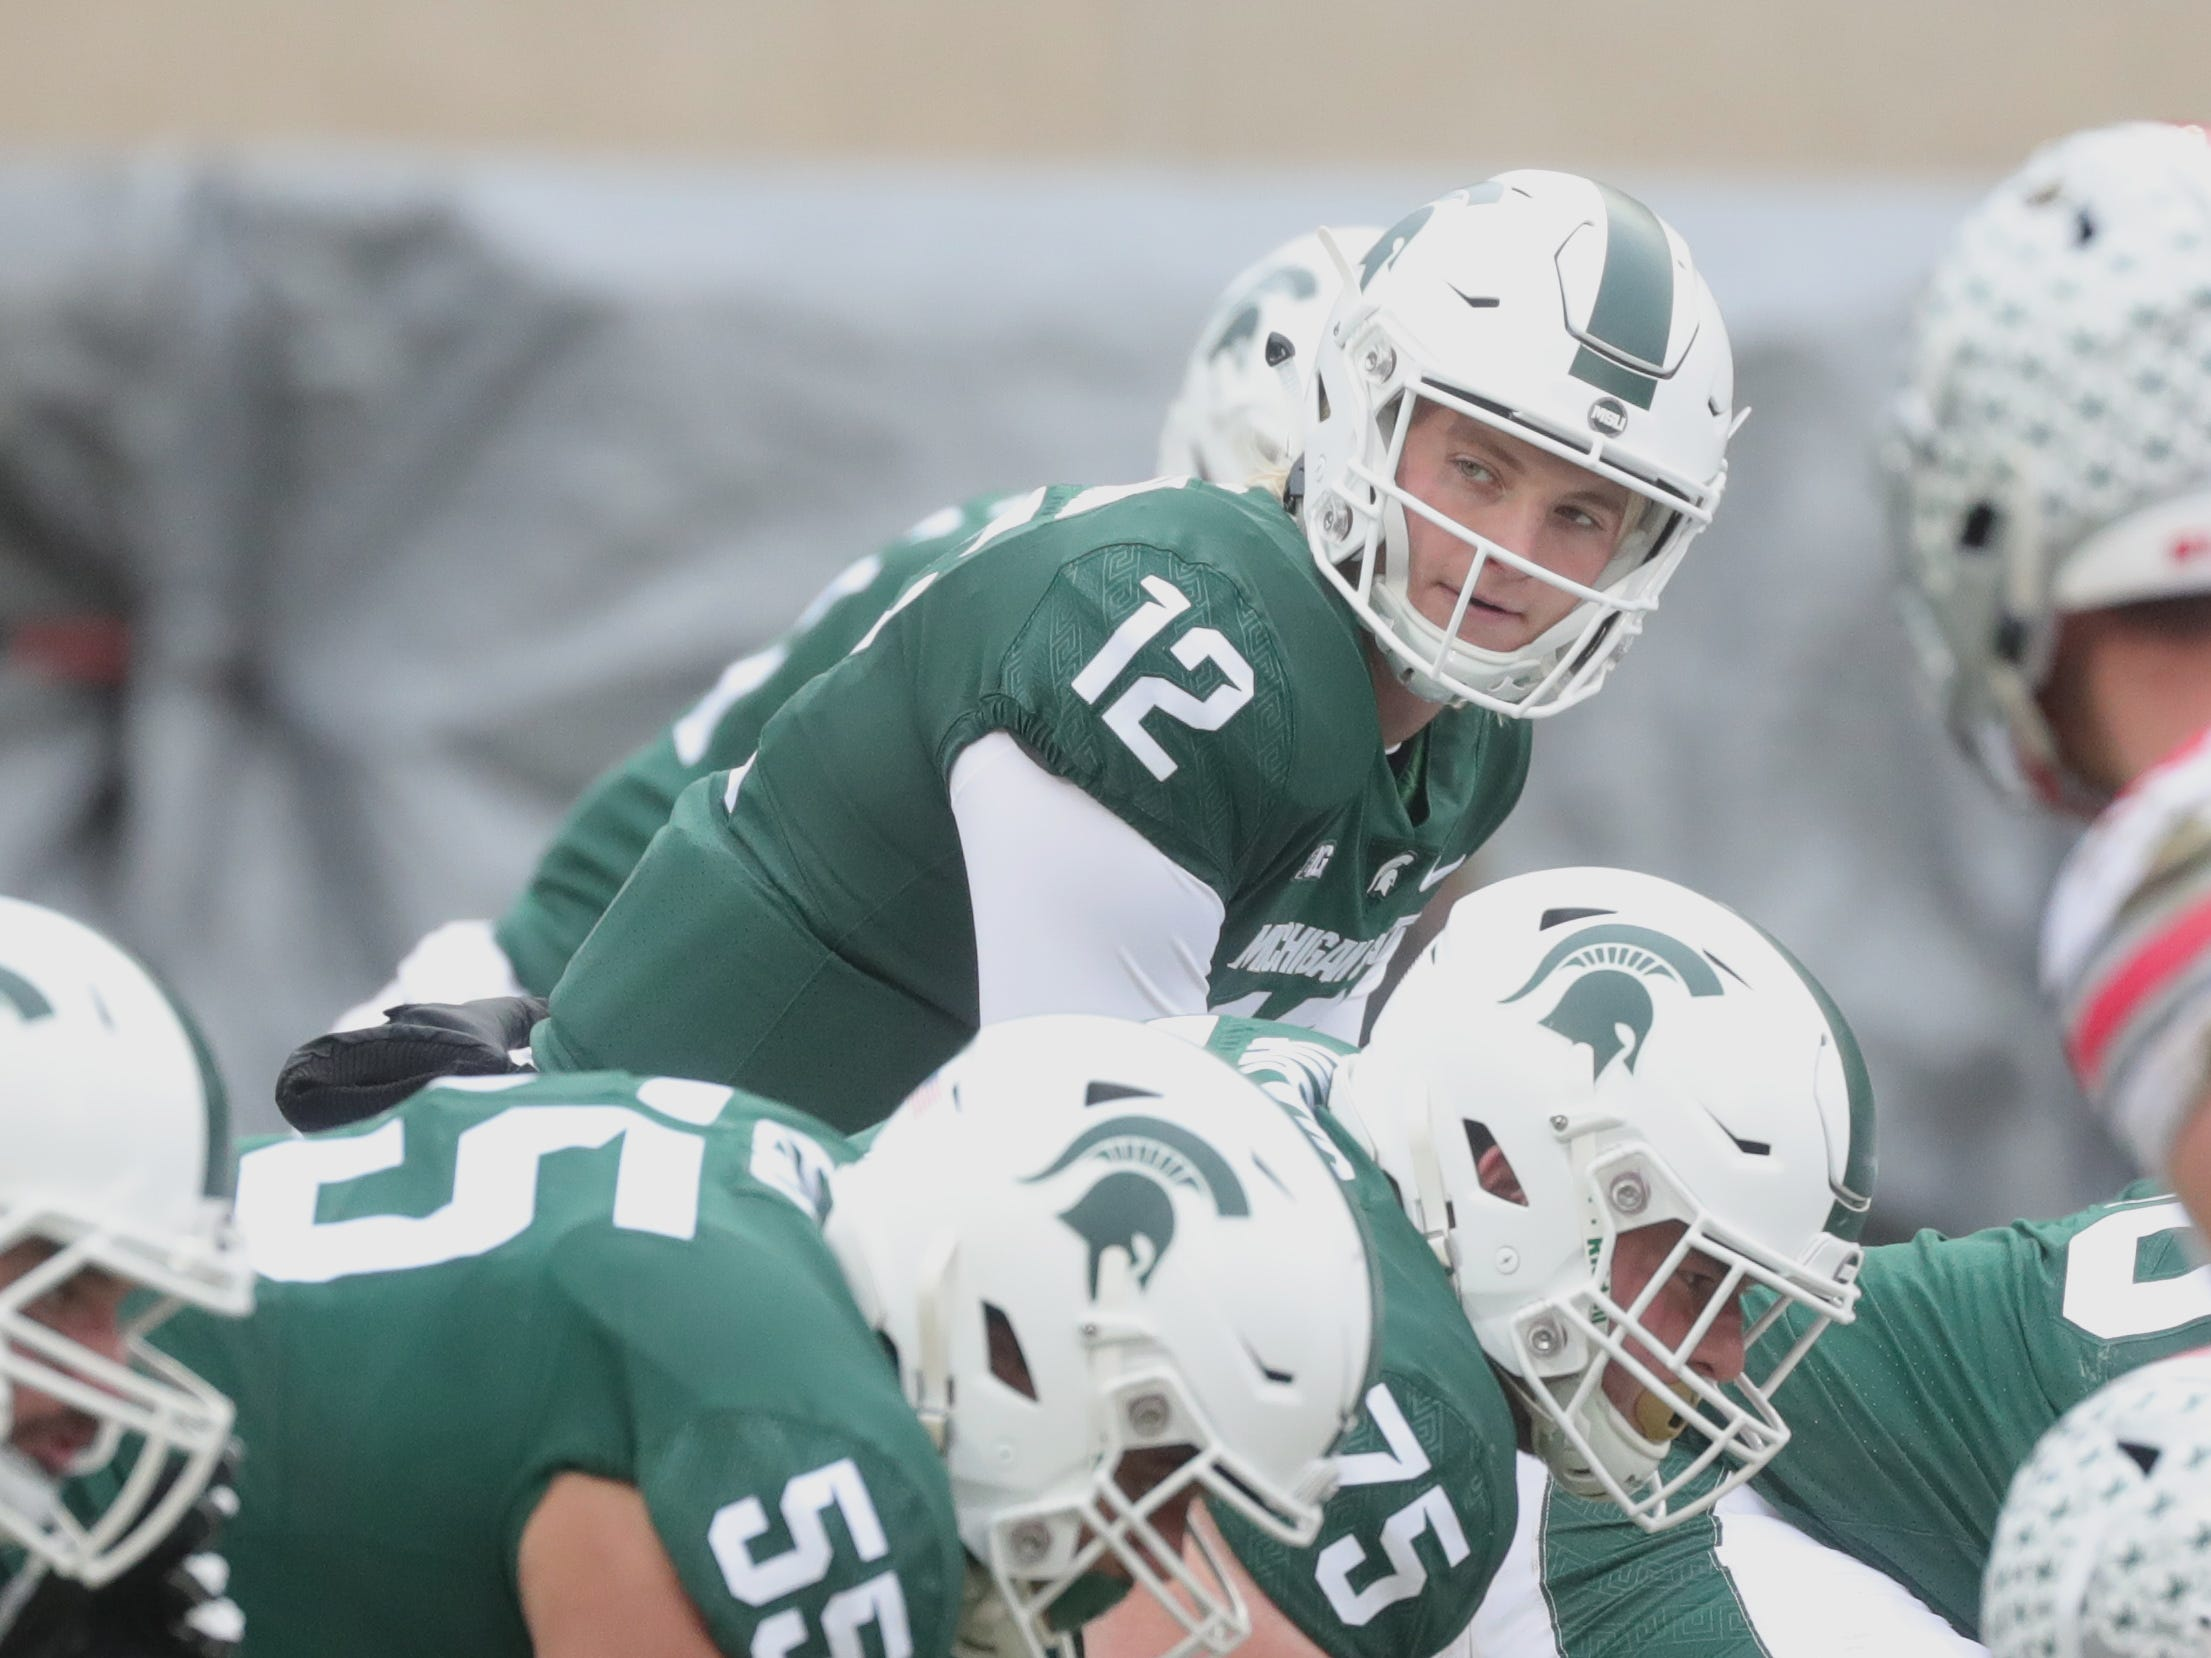 Michigan State's Rocky Lombardi runs the offense against Ohio State during the second half Saturday, Nov. 10, 2018 at Spartan Stadium, in East Lansing.